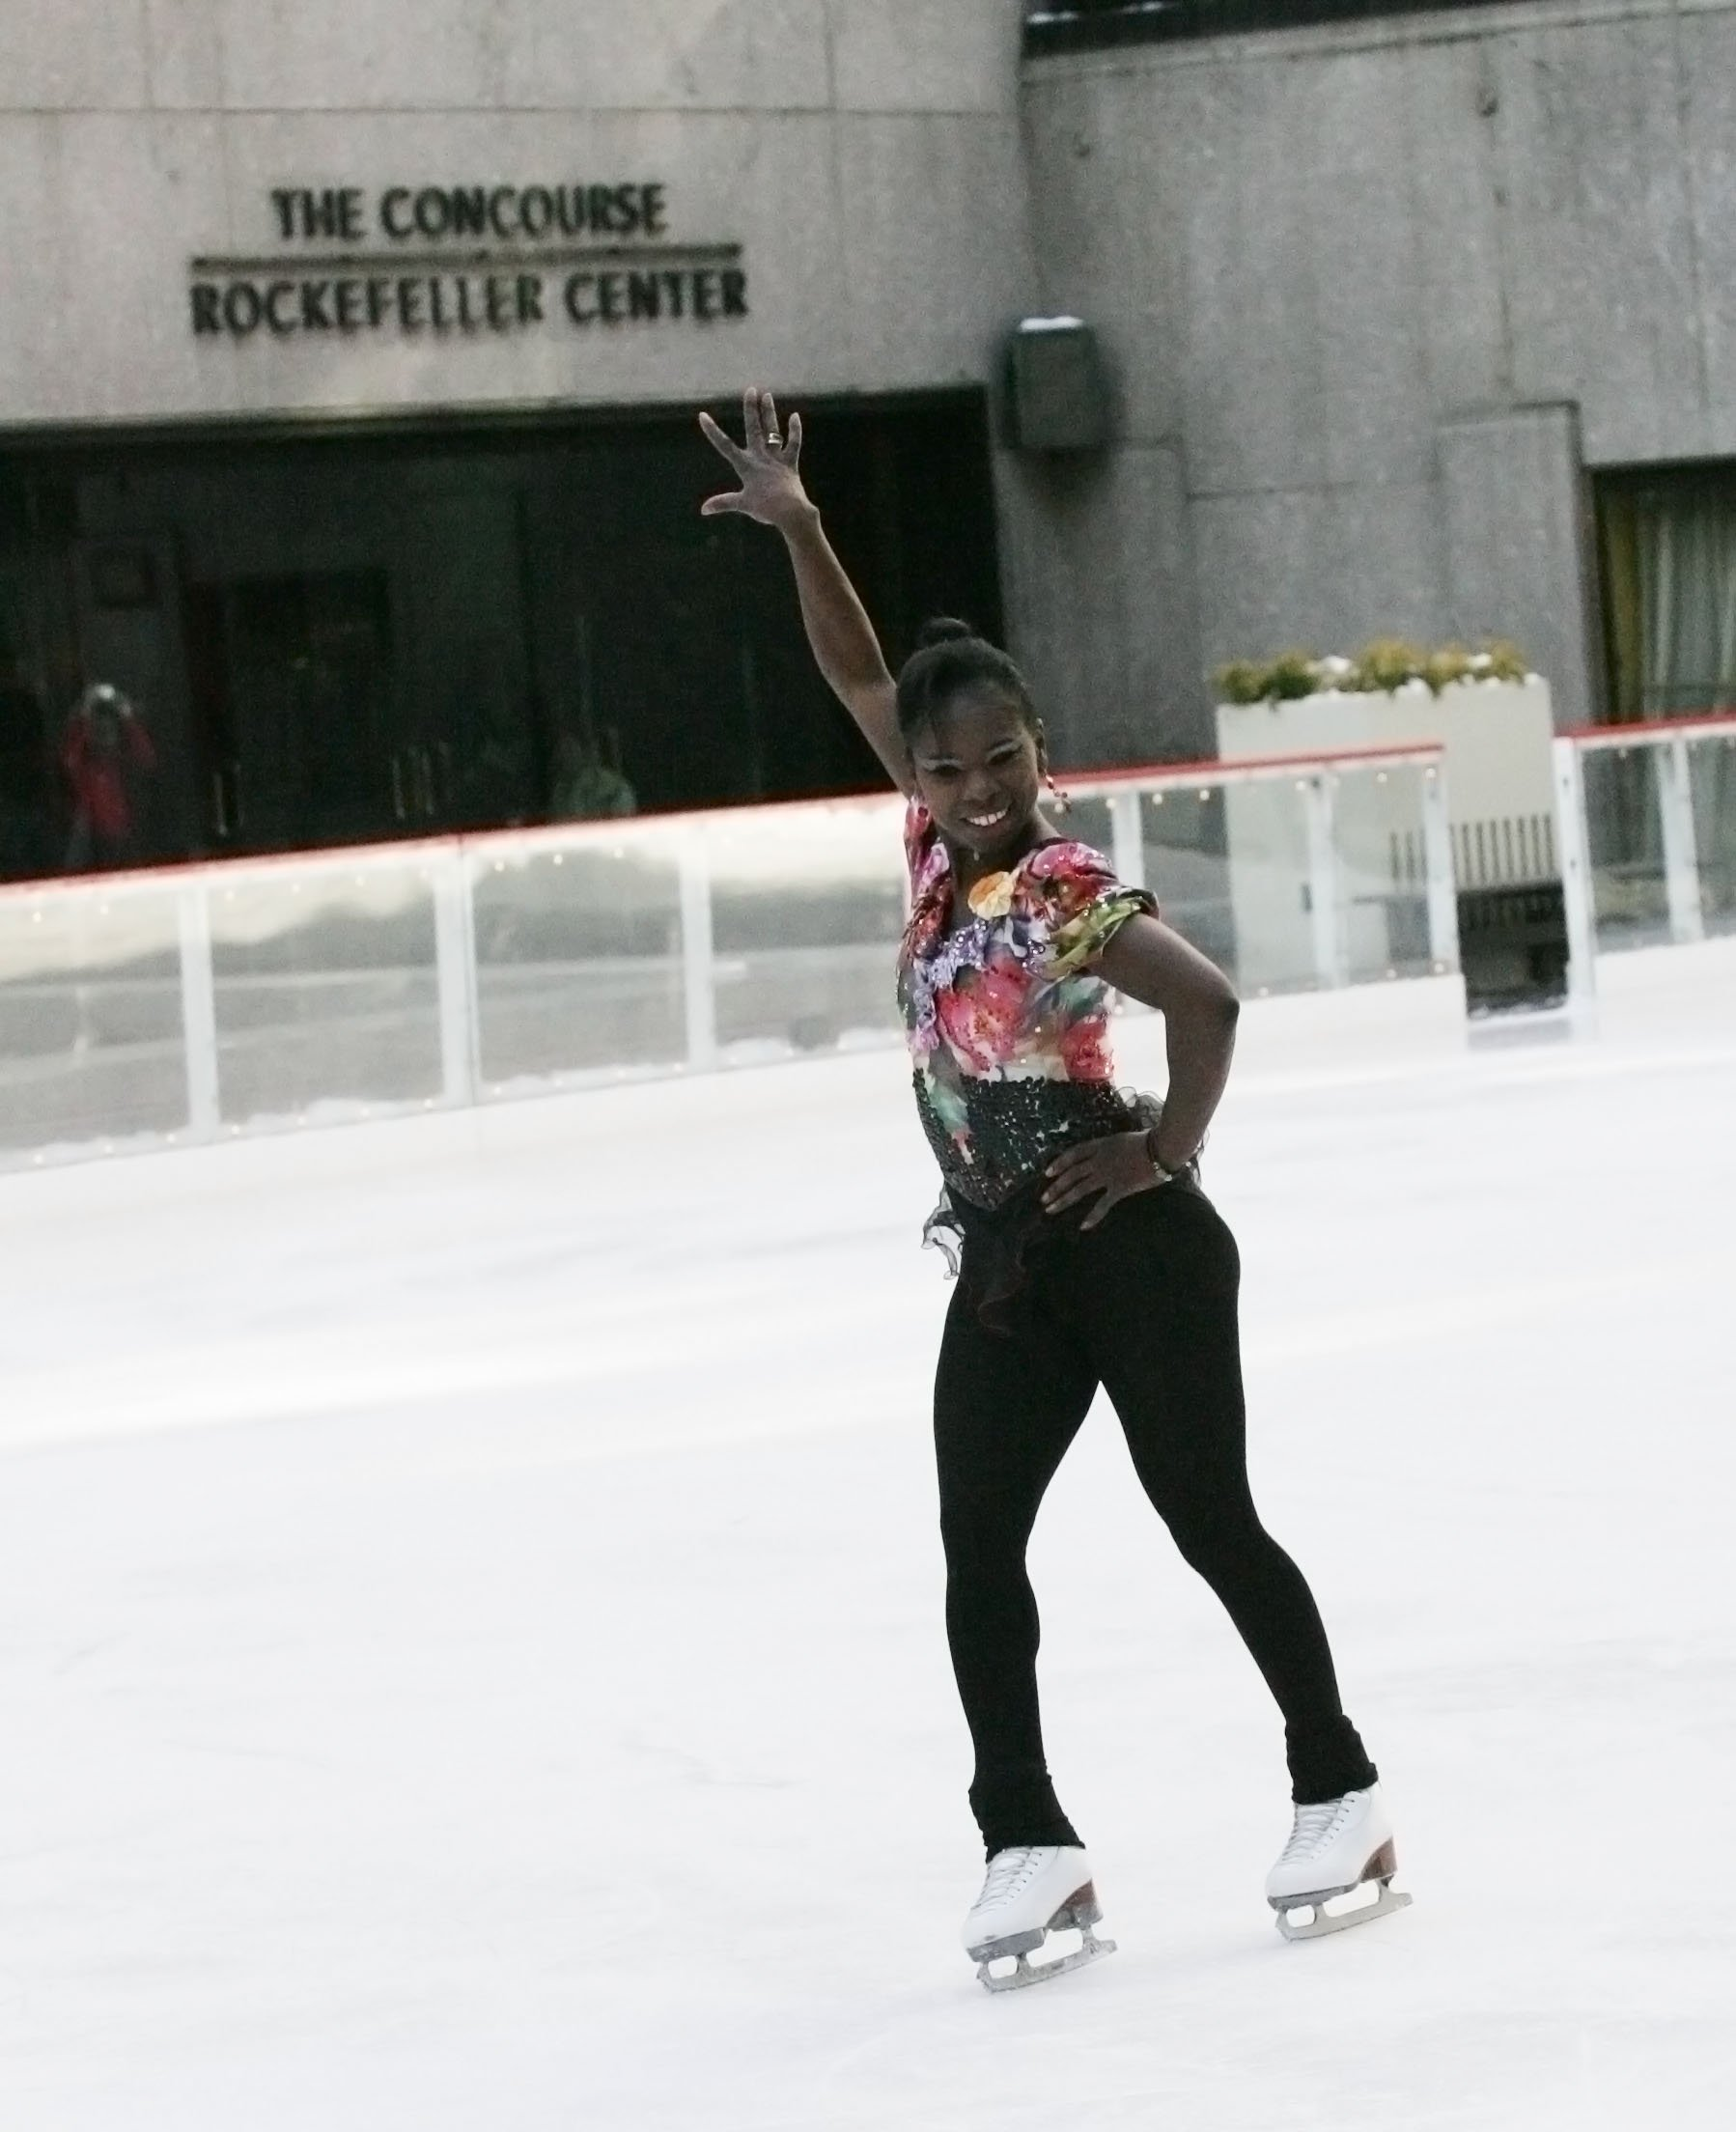 Surya Bonaly performs a back flip at the ice rink at Rockefeller Center on January 21, 2009 | Photo: Getty Images